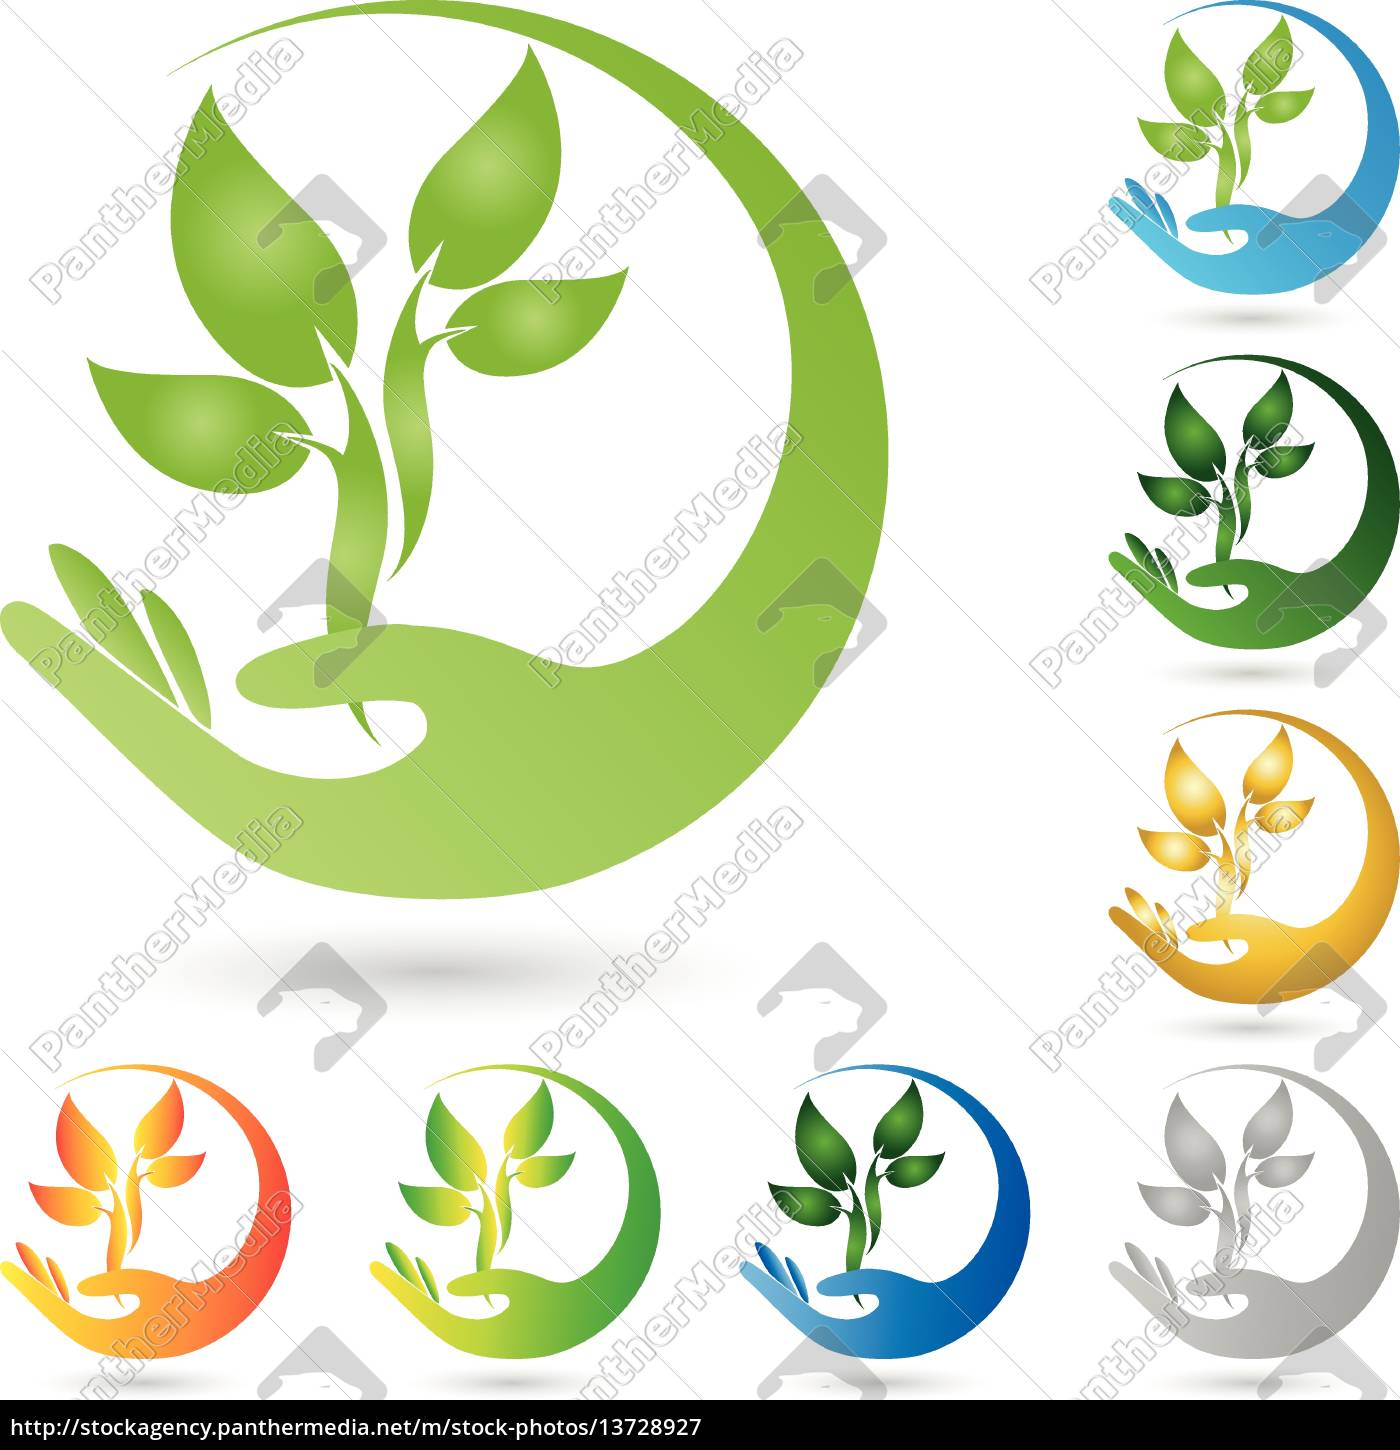 logo, plant, leaves, hand, naturopaths - 13728927